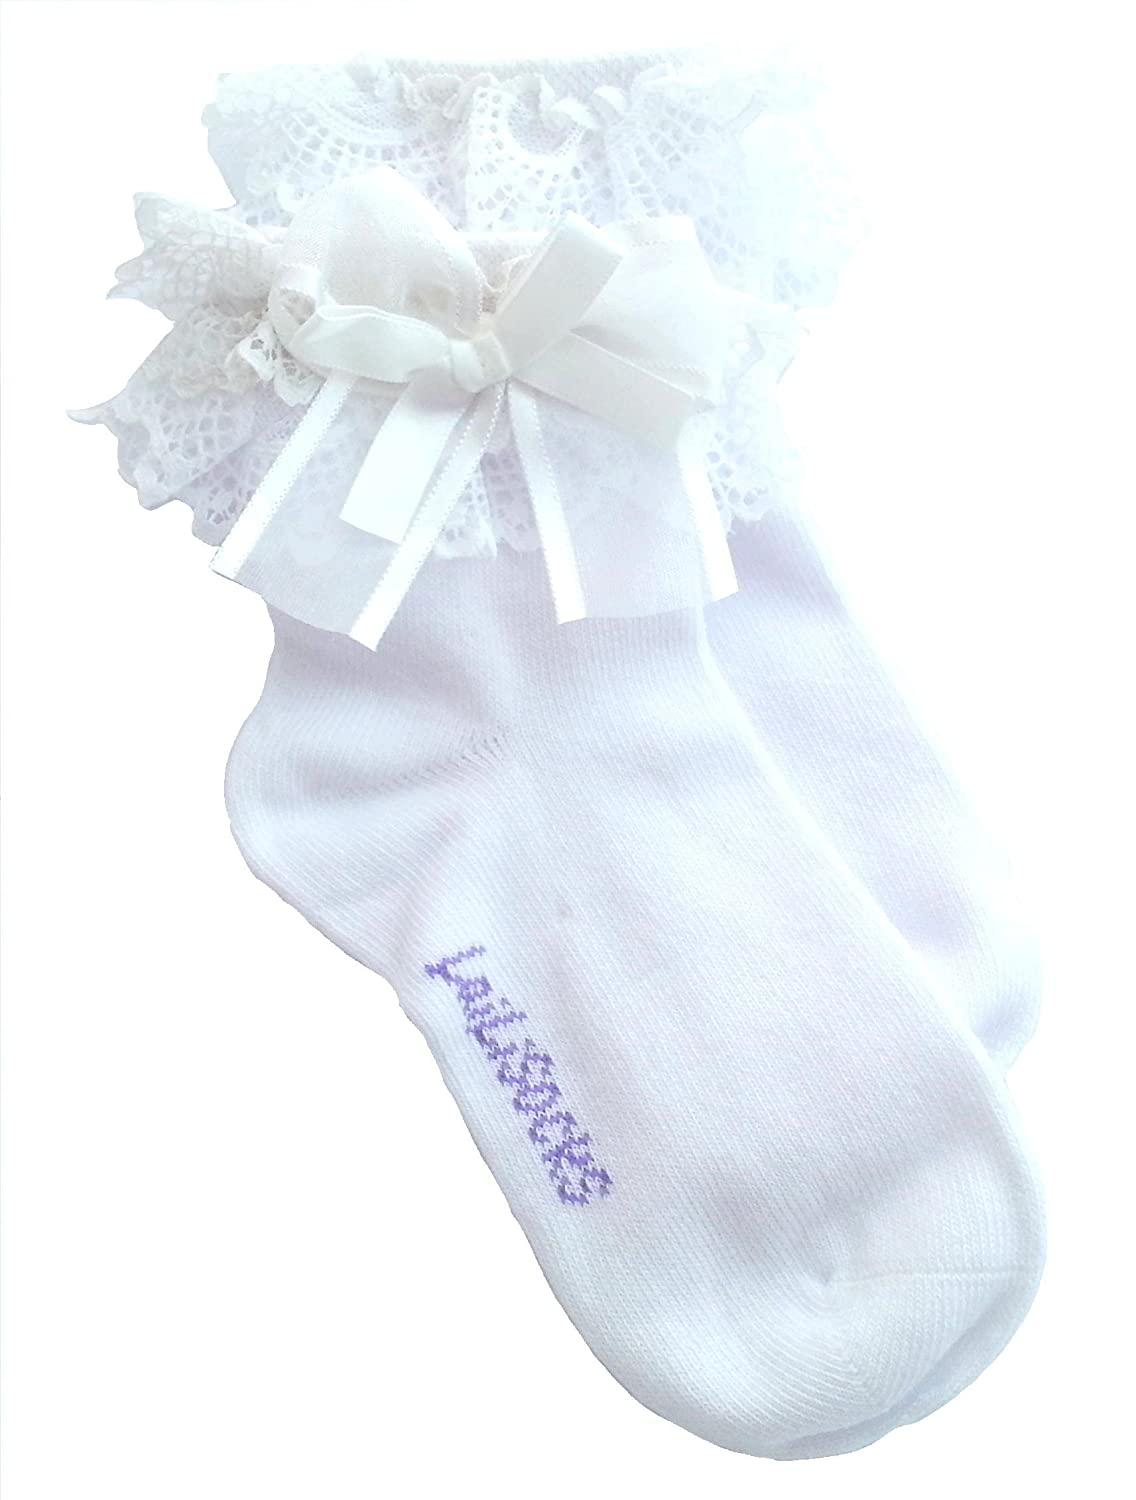 Baby/Girl Pack of 2 WHITE Super Soft Lace Frilly Ankle Socks Age 1 2 3 4 5 6 7